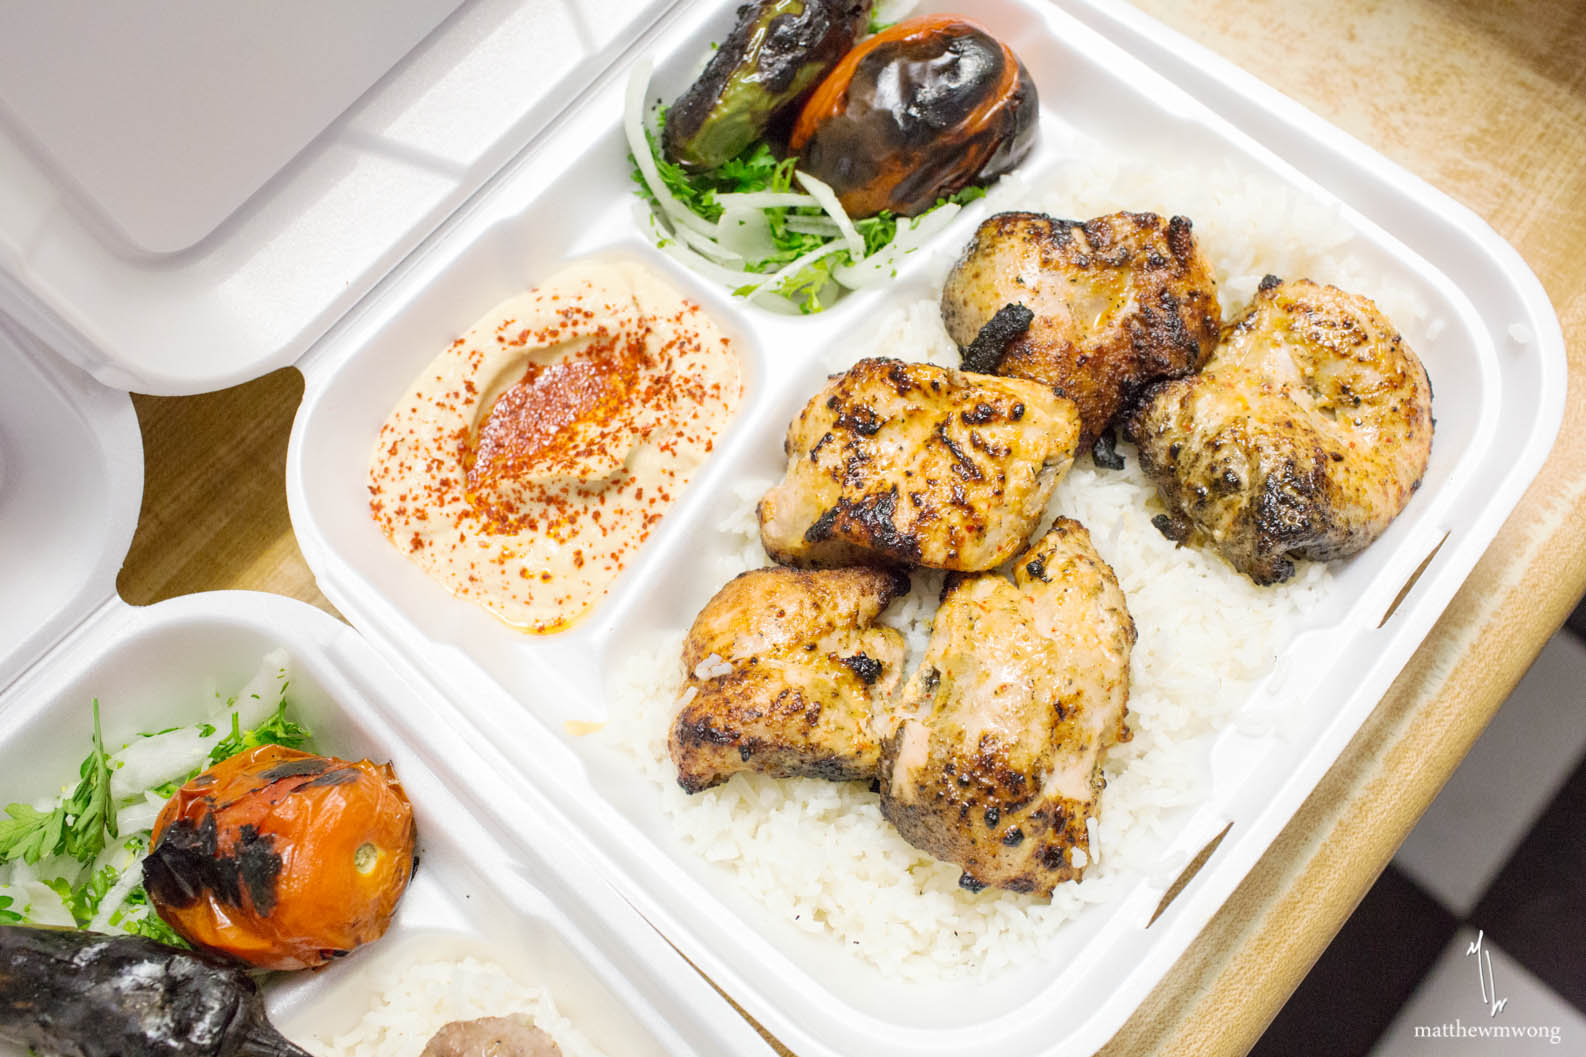 Chicken Kabob - To go